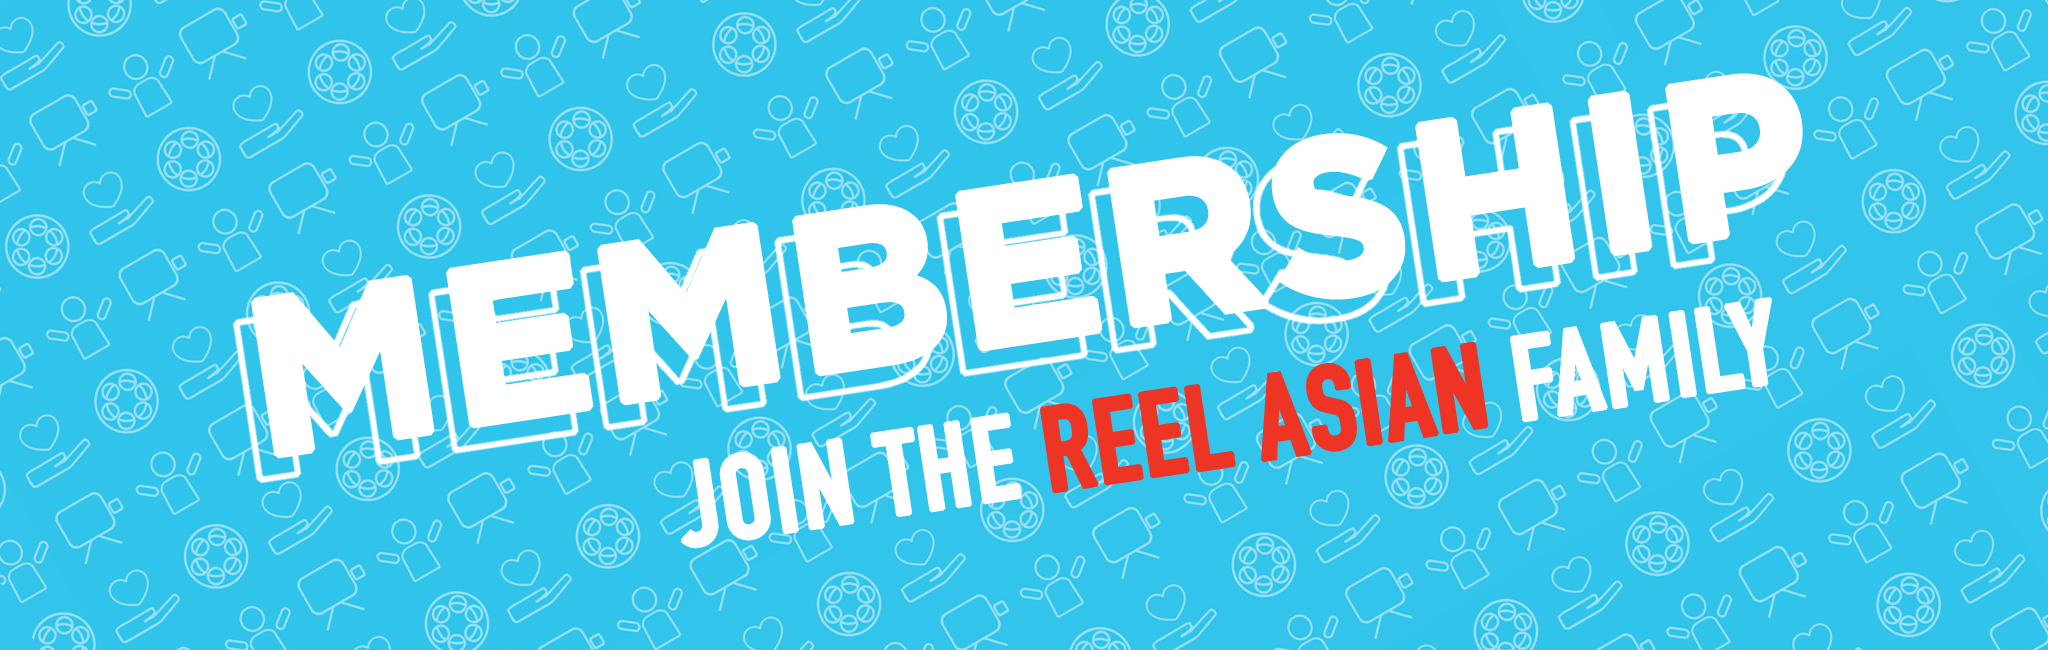 Join the Reel Asian family today and enjoy many festival benefits!